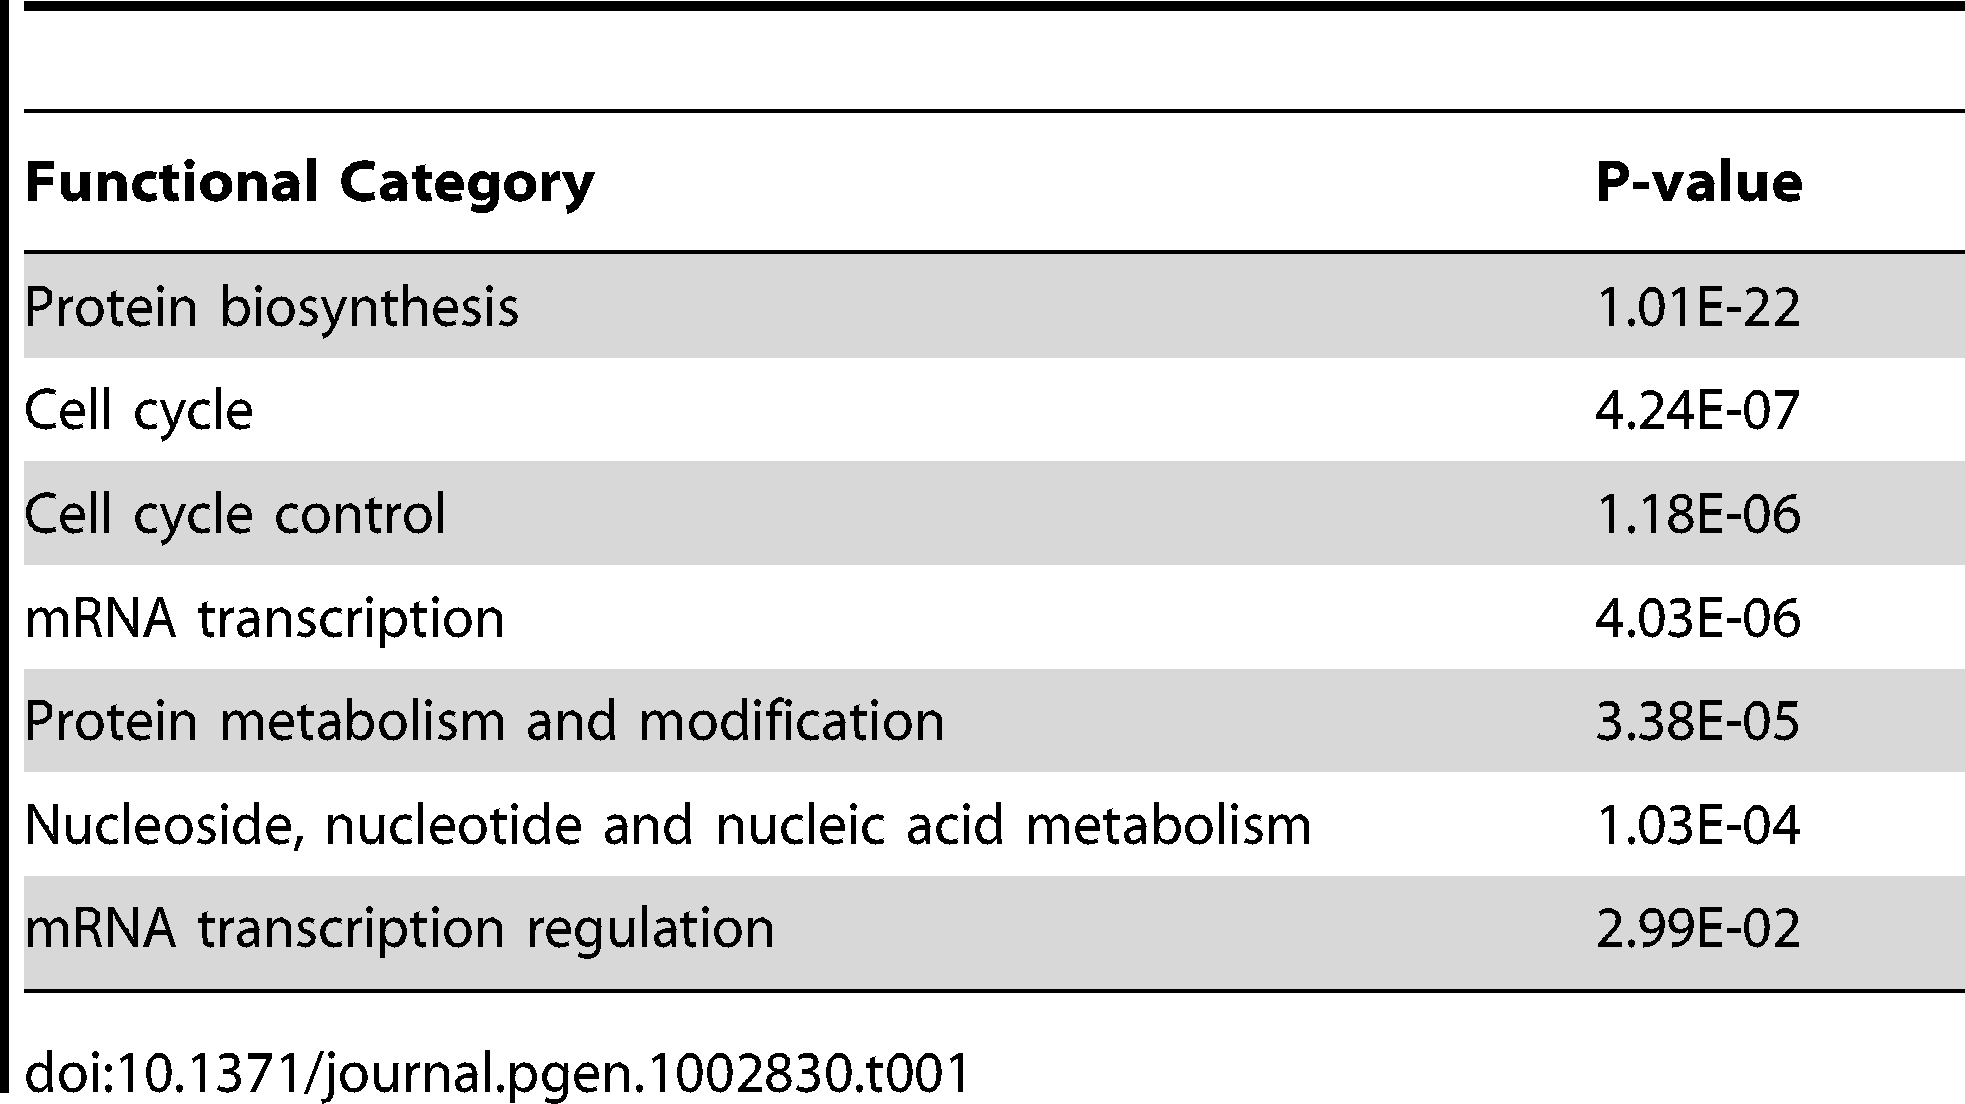 Gene ontology categories that were enriched in the genome-wide RNAi screen.